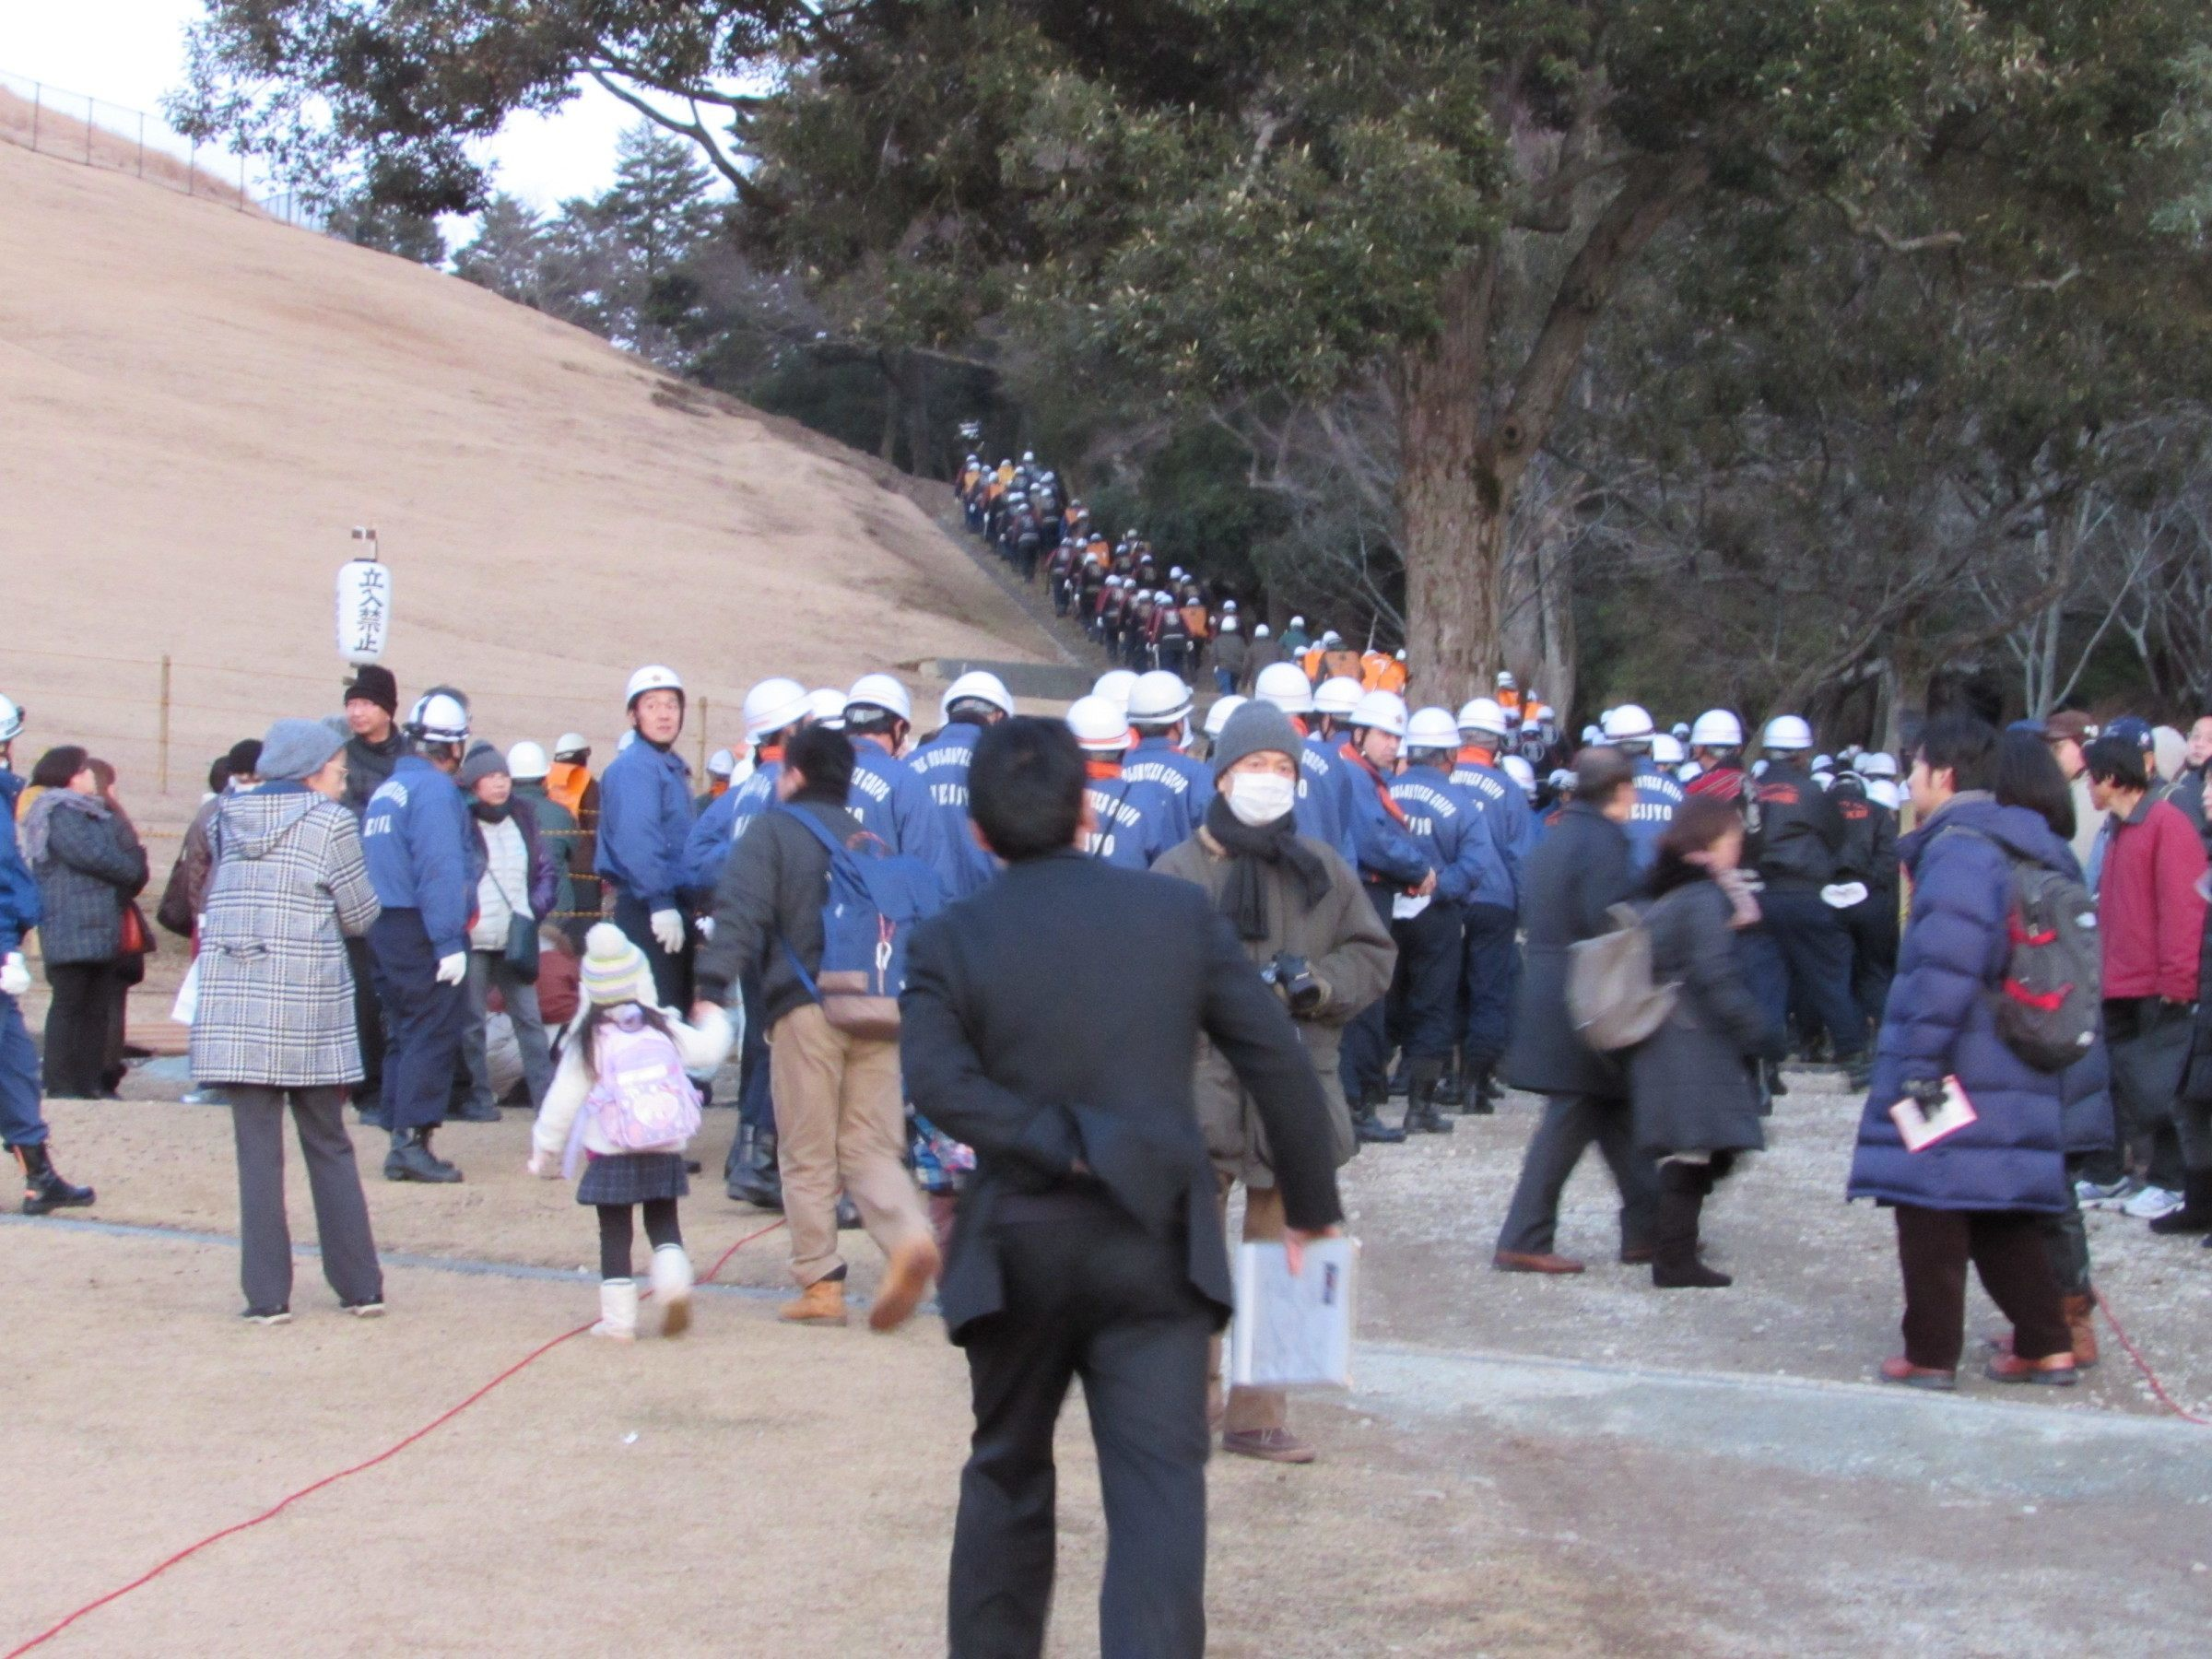 On arrival back at the base of Mt. Wakakusa, there were 300 of Nara's firefighters getting ready to do the exact opposite of their job - to set fire to the mountain!